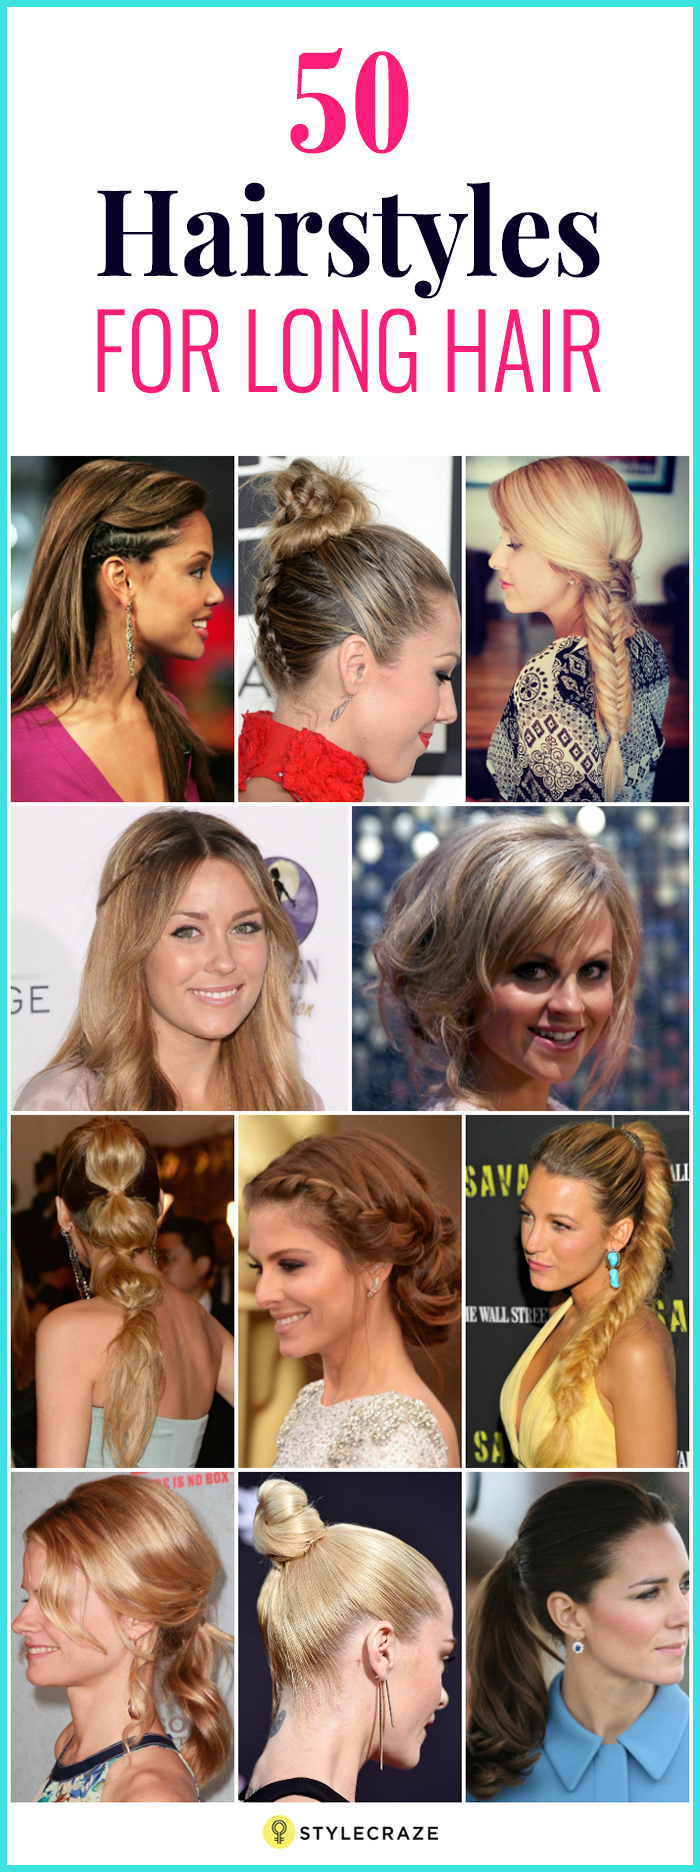 11 Unique Hairstyles For Long Hair